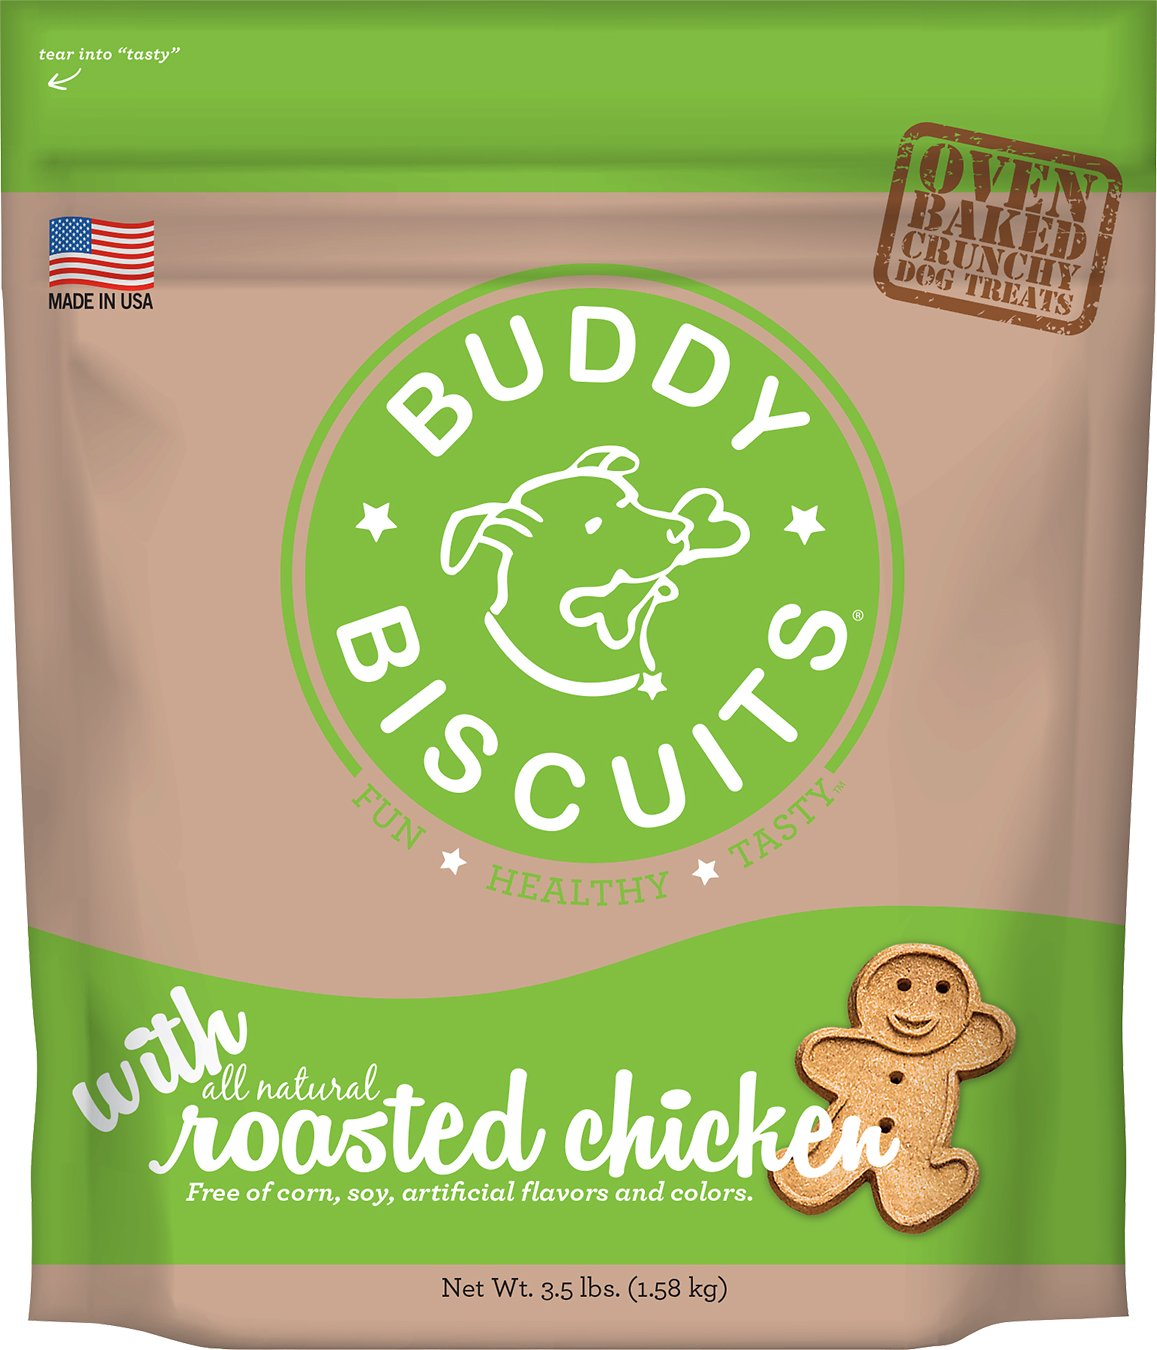 Buddy Biscuits with Roasted Chicken Oven Baked Dog Treats Image